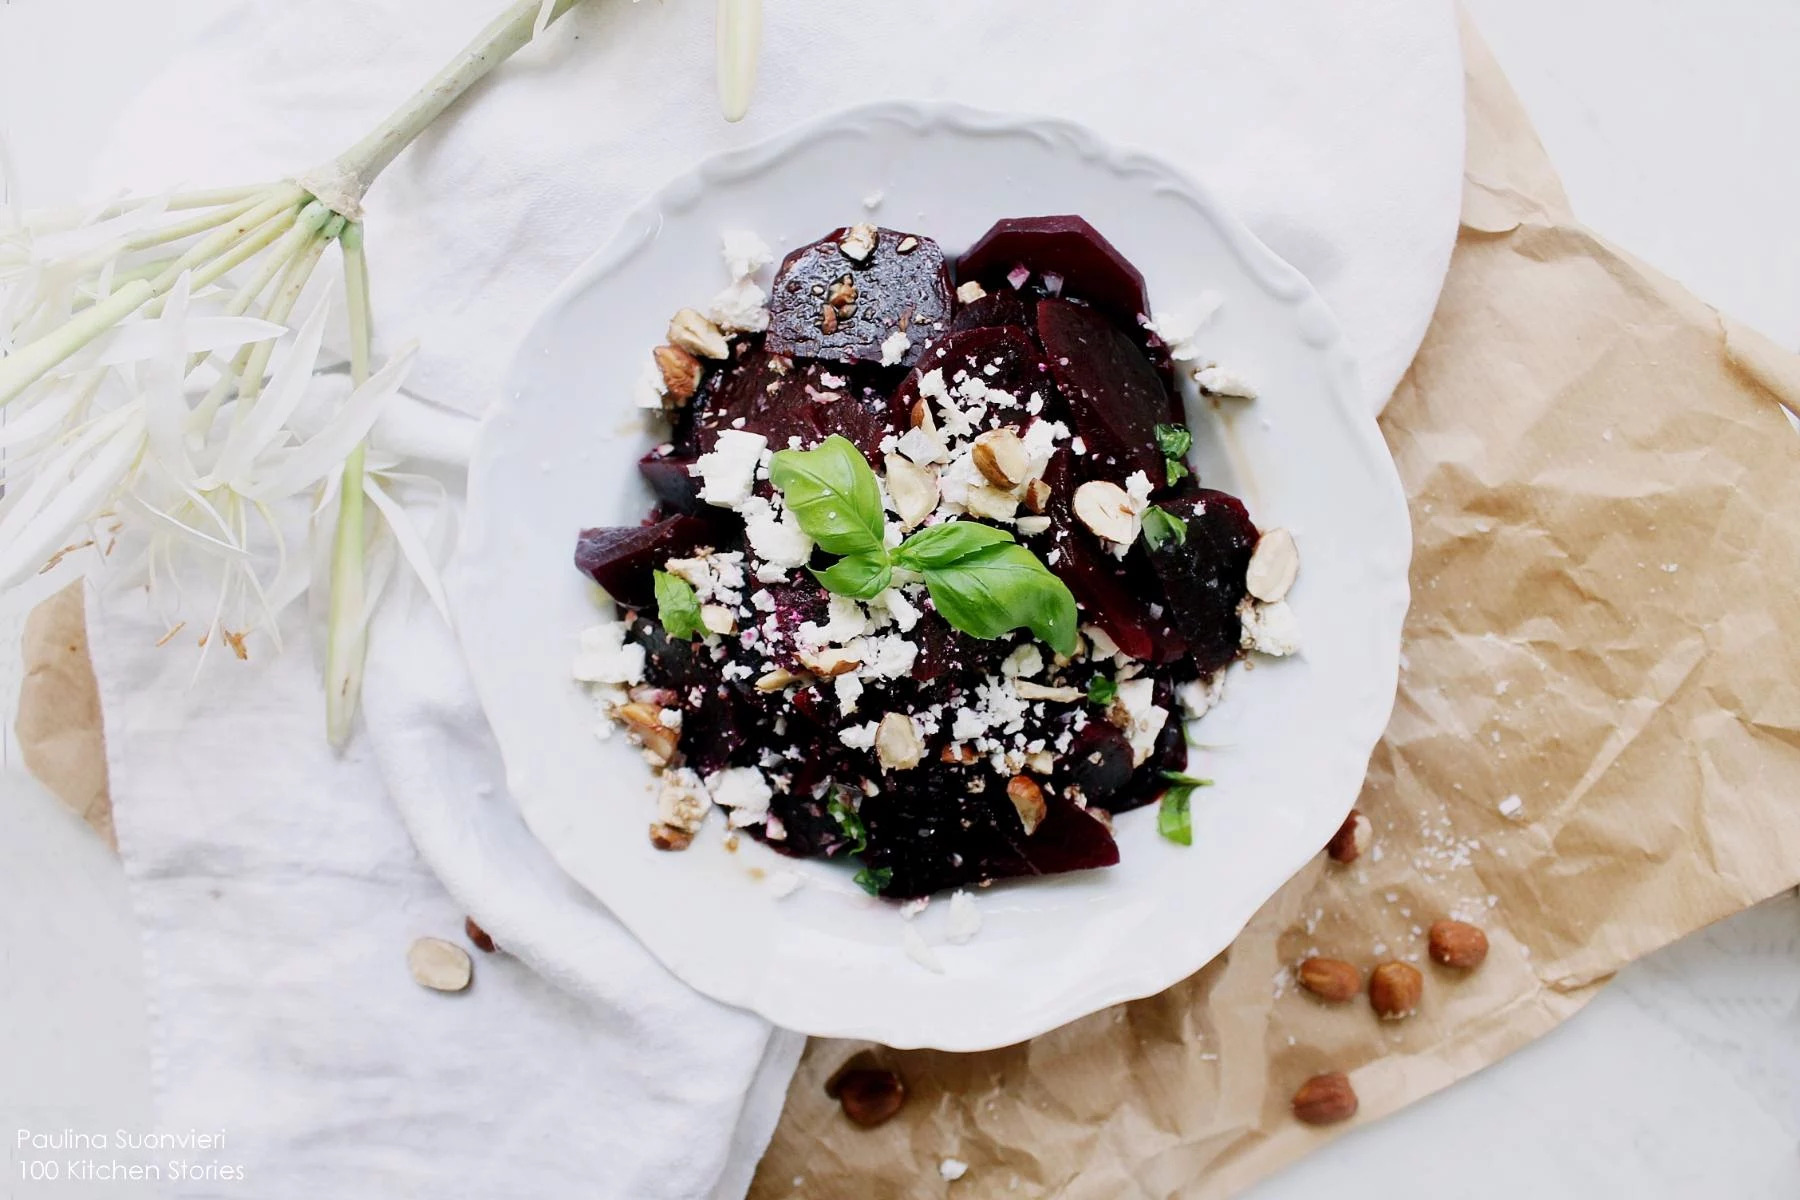 Beetroot Salad with Feta Cheese, Hazelnuts and Fresh Basil